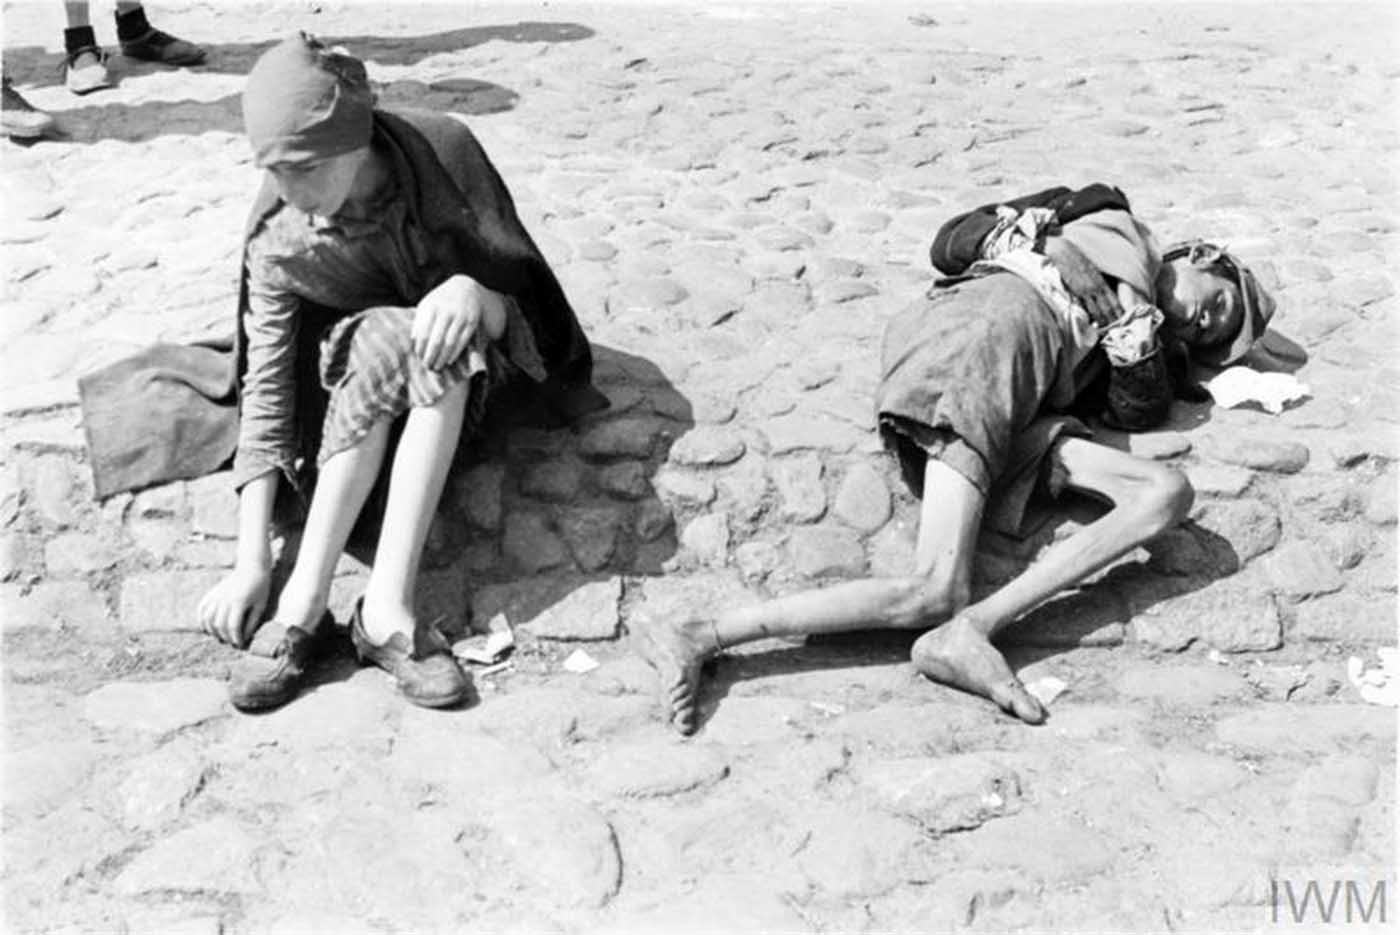 Two emaciated children, one of them asleep or unconscious, begging on the street of the ghetto.